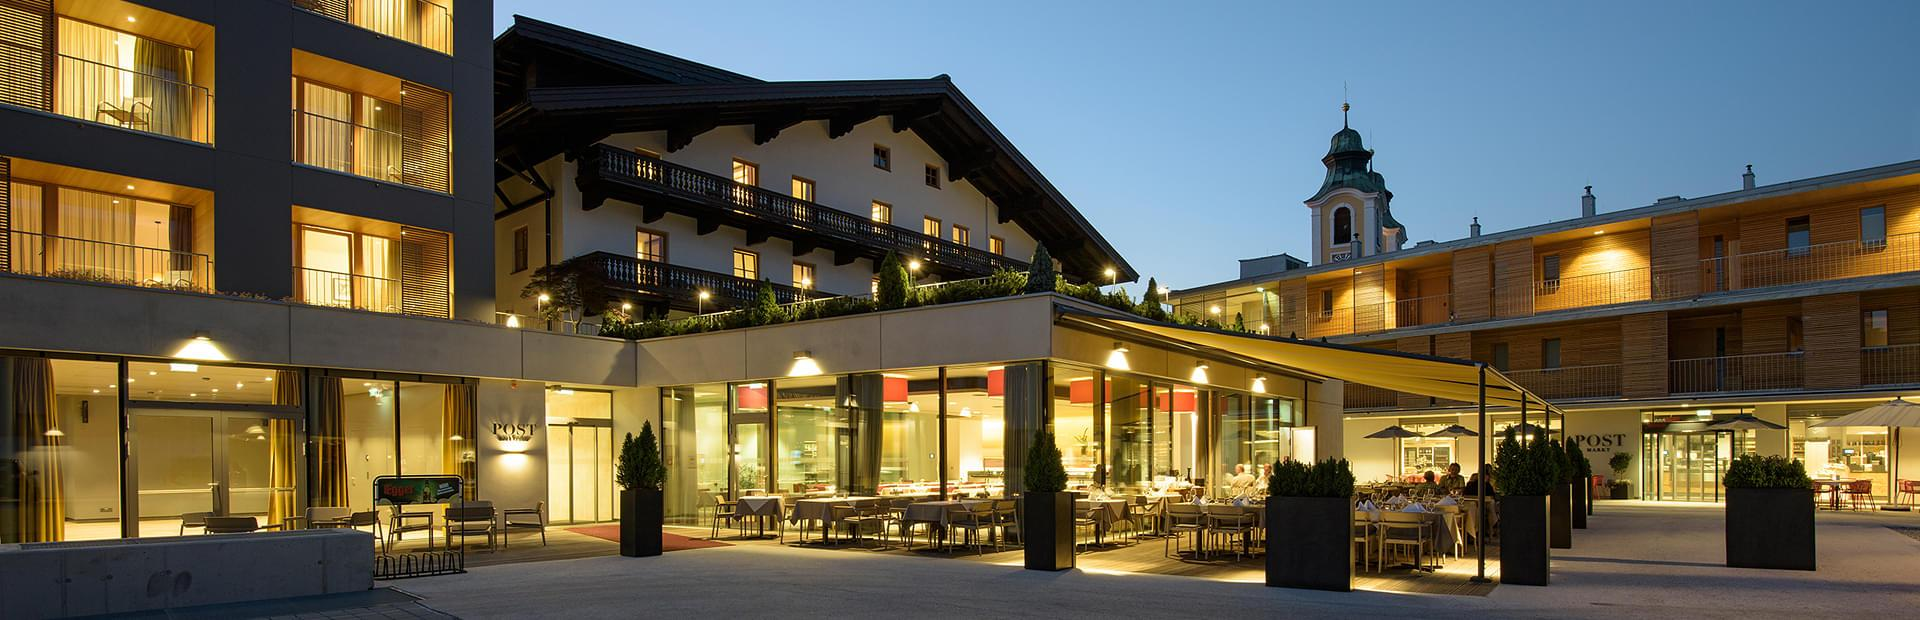 Hotel Zur Post Tirol